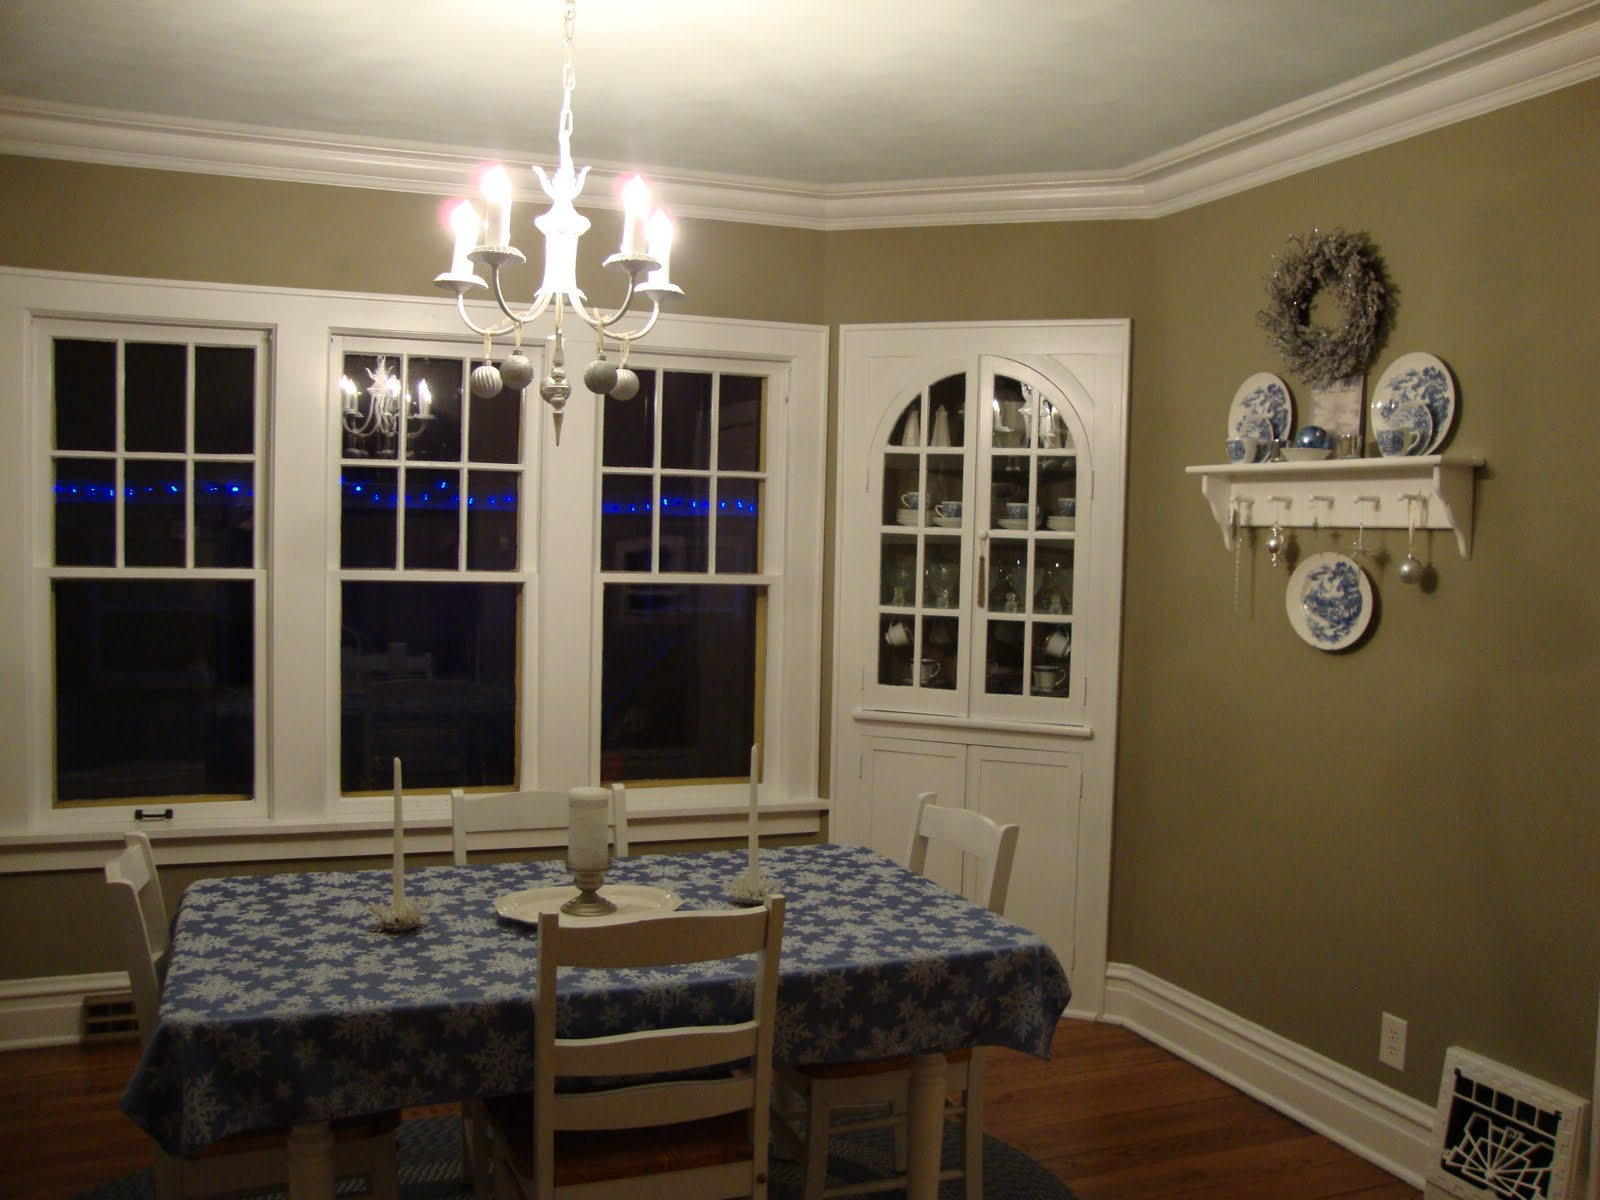 Install Small Chandelier above White Dining Table and Chairs near Old Fashioned Dining Room Wall Decor